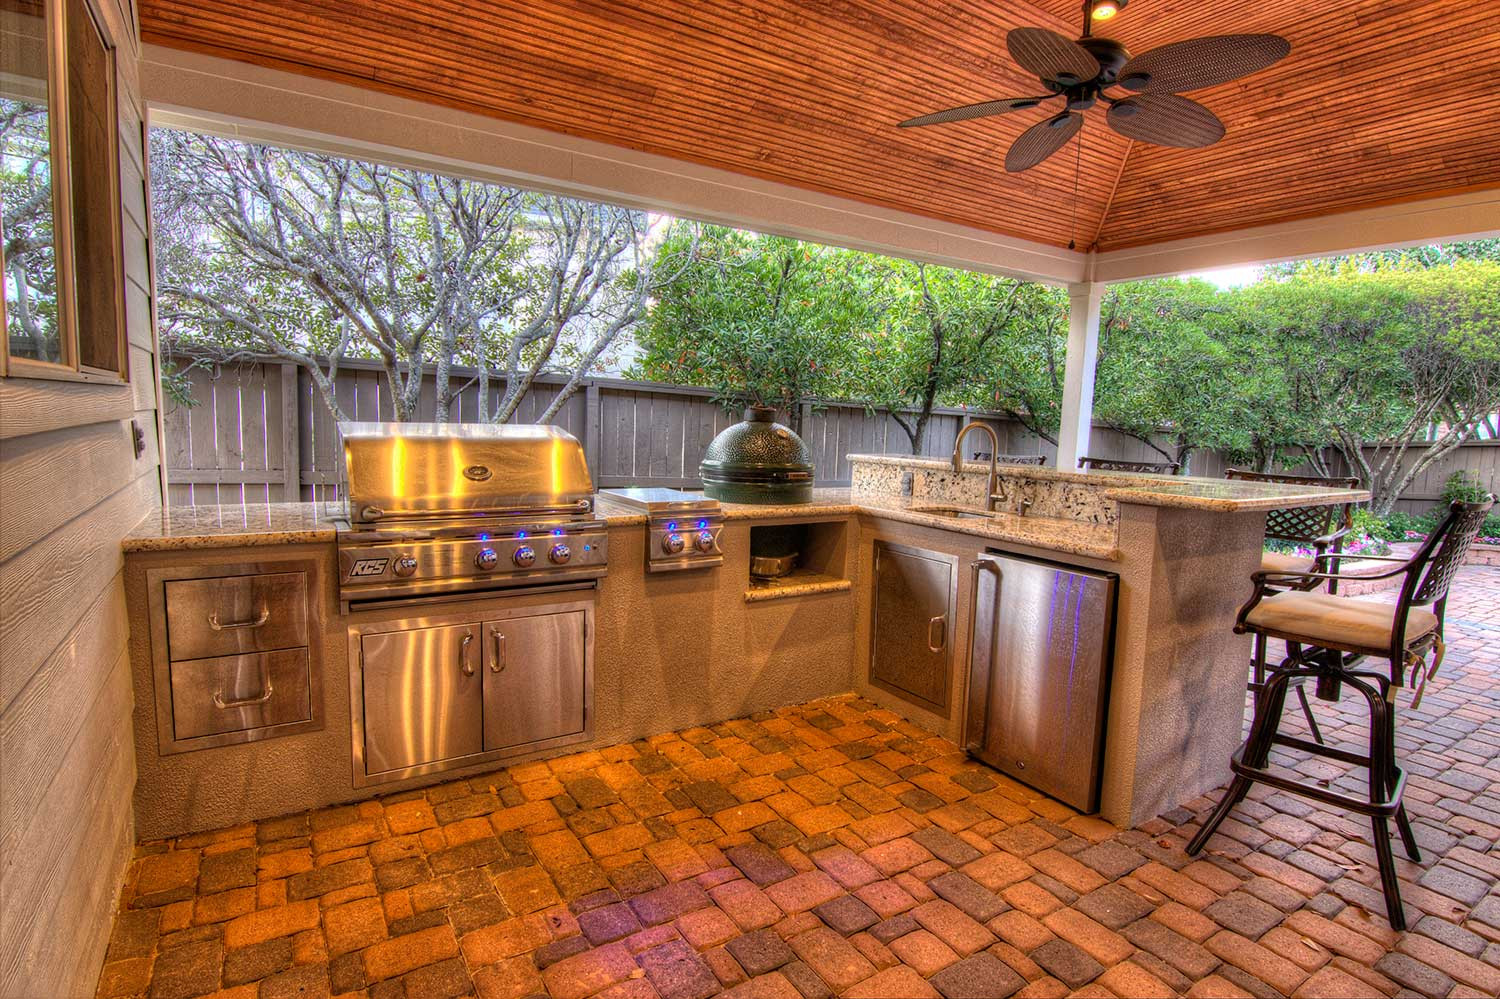 Outdoor Kitchen Deck  Outdoor Kitchens HHI Patio Covers Houston